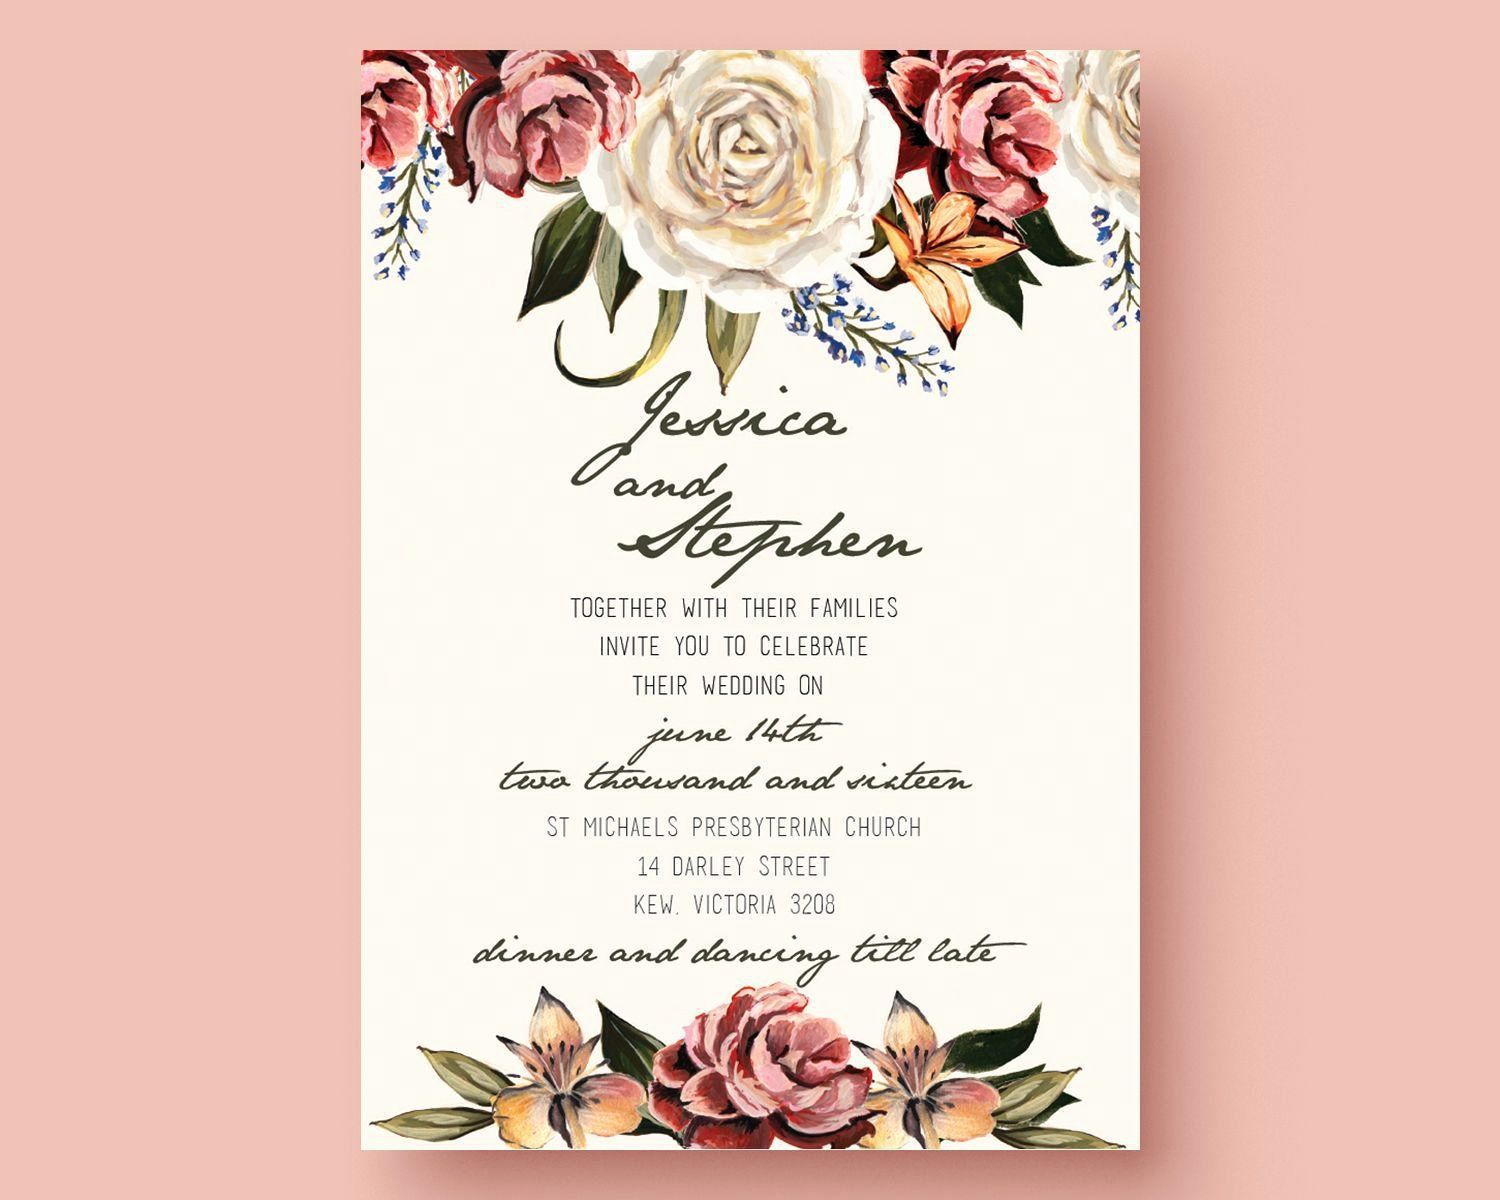 002 Unusual Free Wedding Invitation Template Download Sample  Psd Card IndianFull